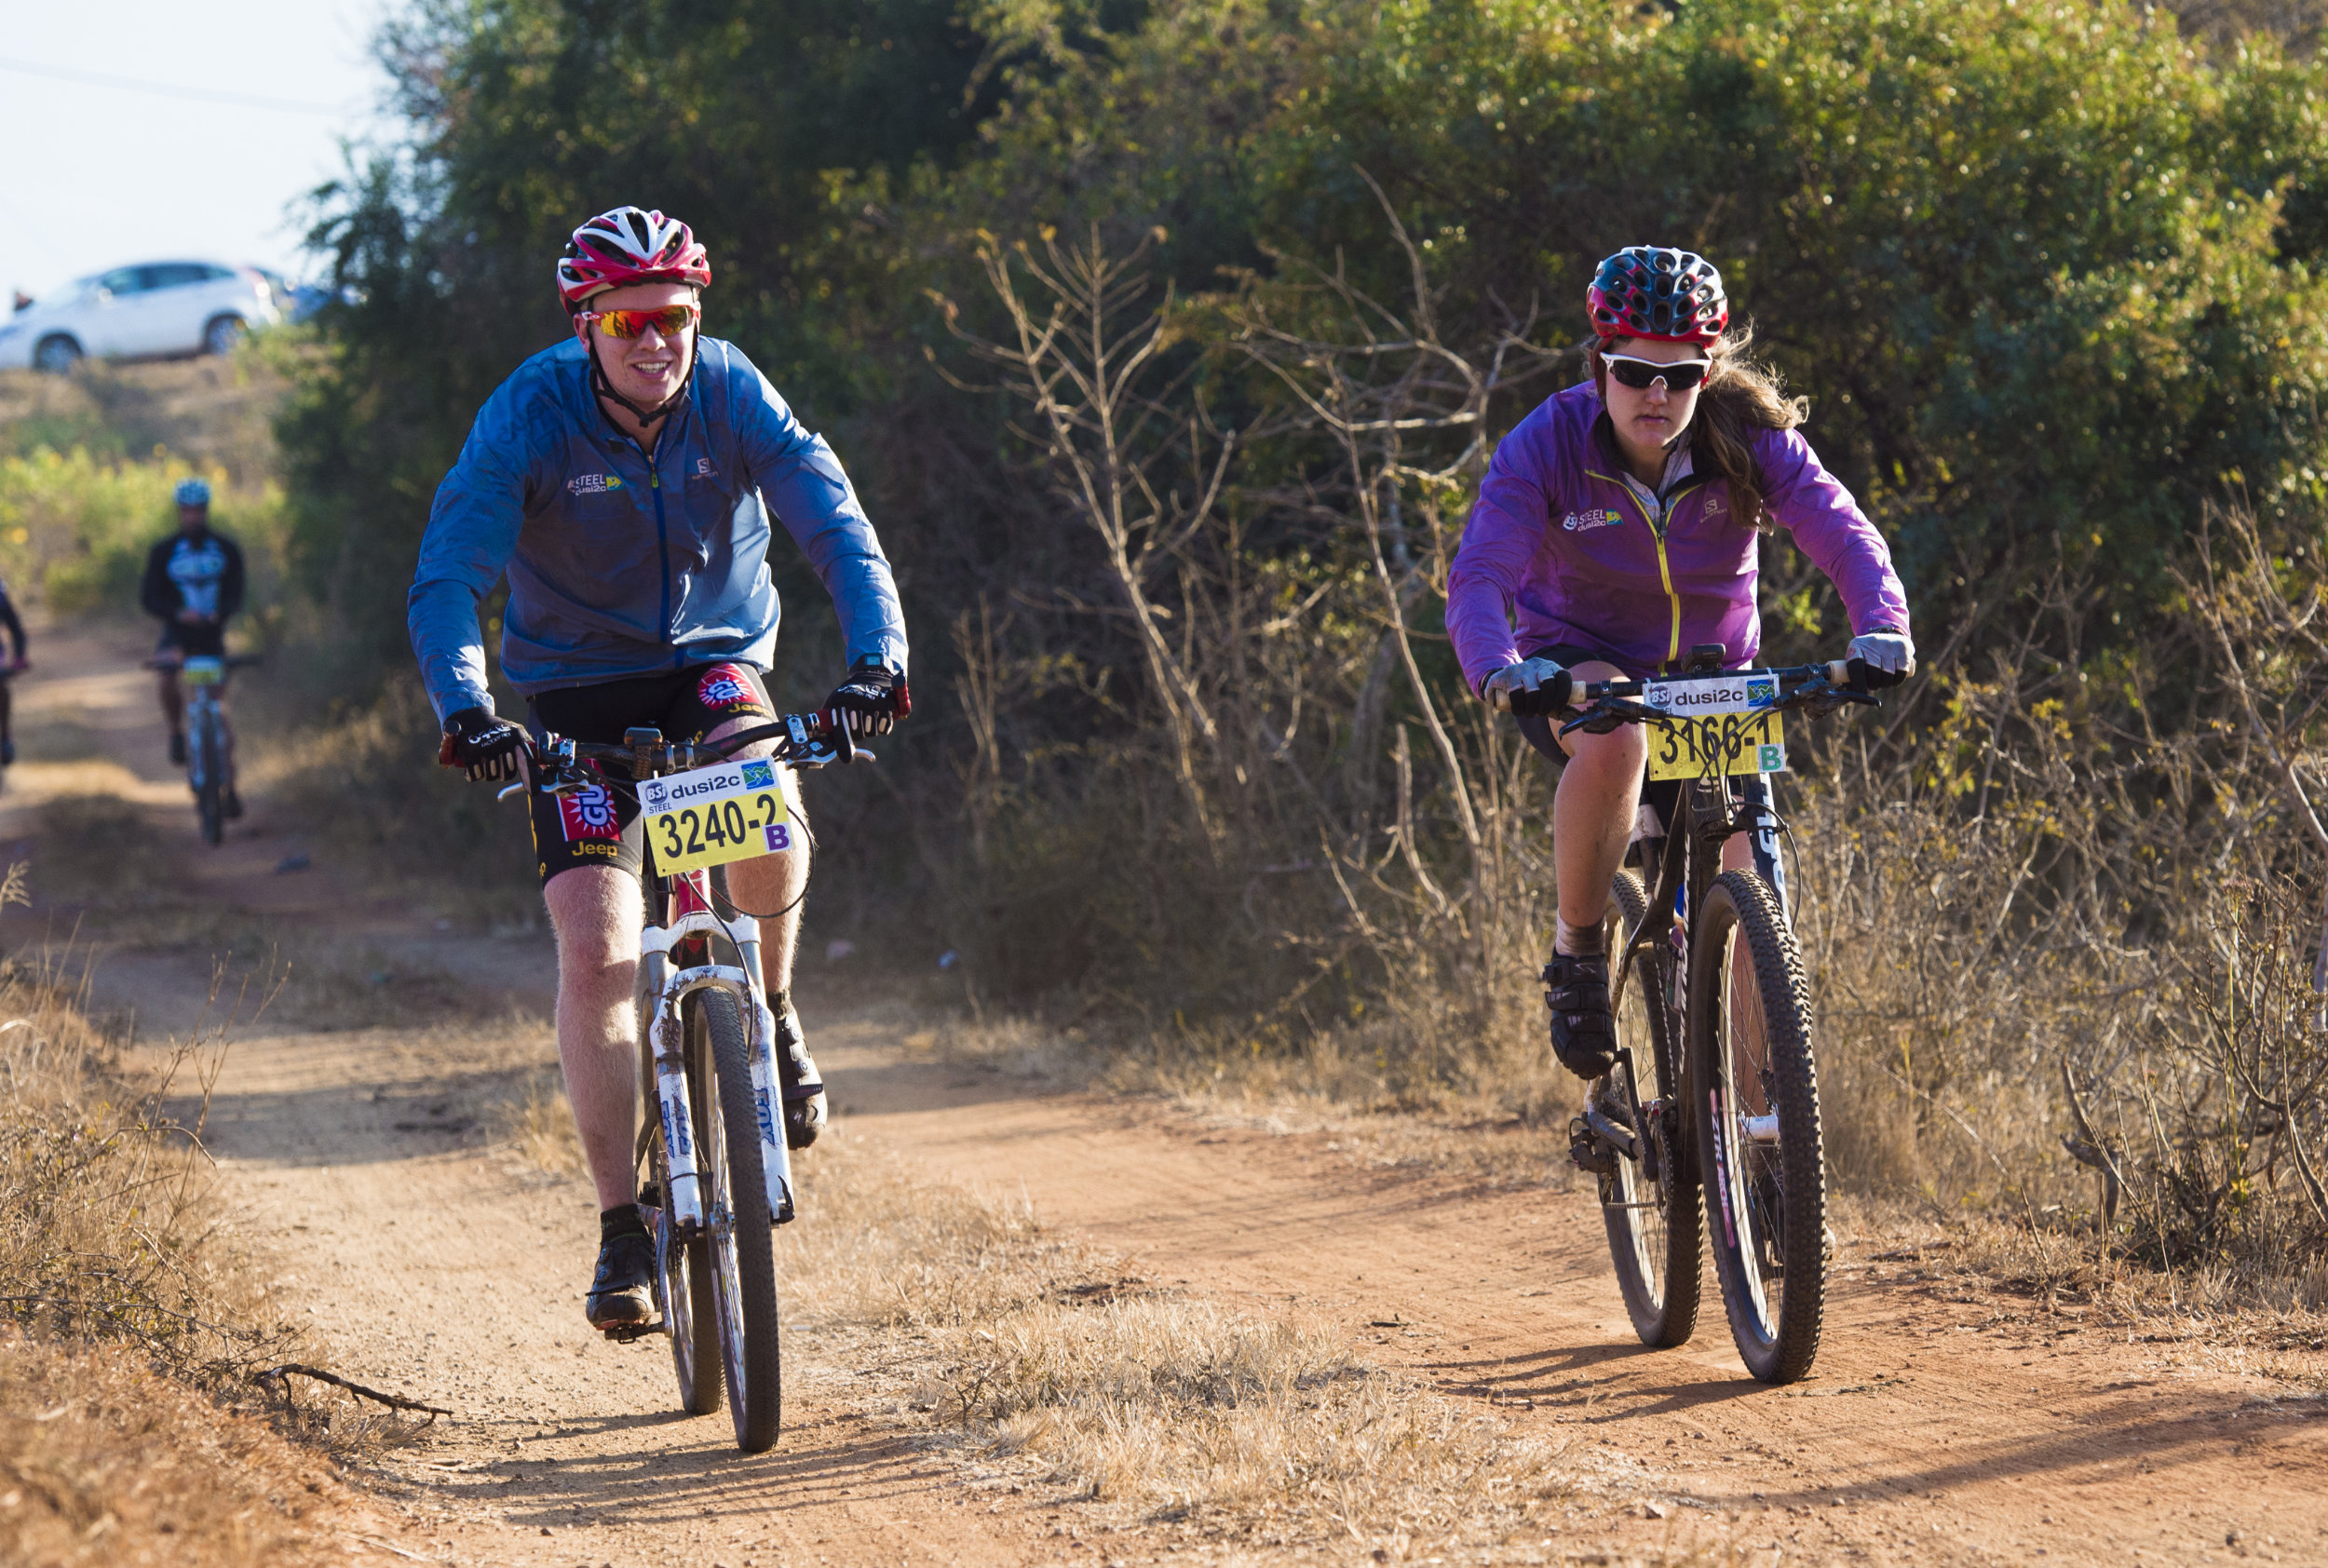 Murray Starr (left) and Tamika Haw (right) are just two of a sizeable group of paddlers looking to blur the lines between sports codes when they take on the 2015 BSi Steel dusi2c MTB stage race this weekend. Anthony Grote/Gameplan Media